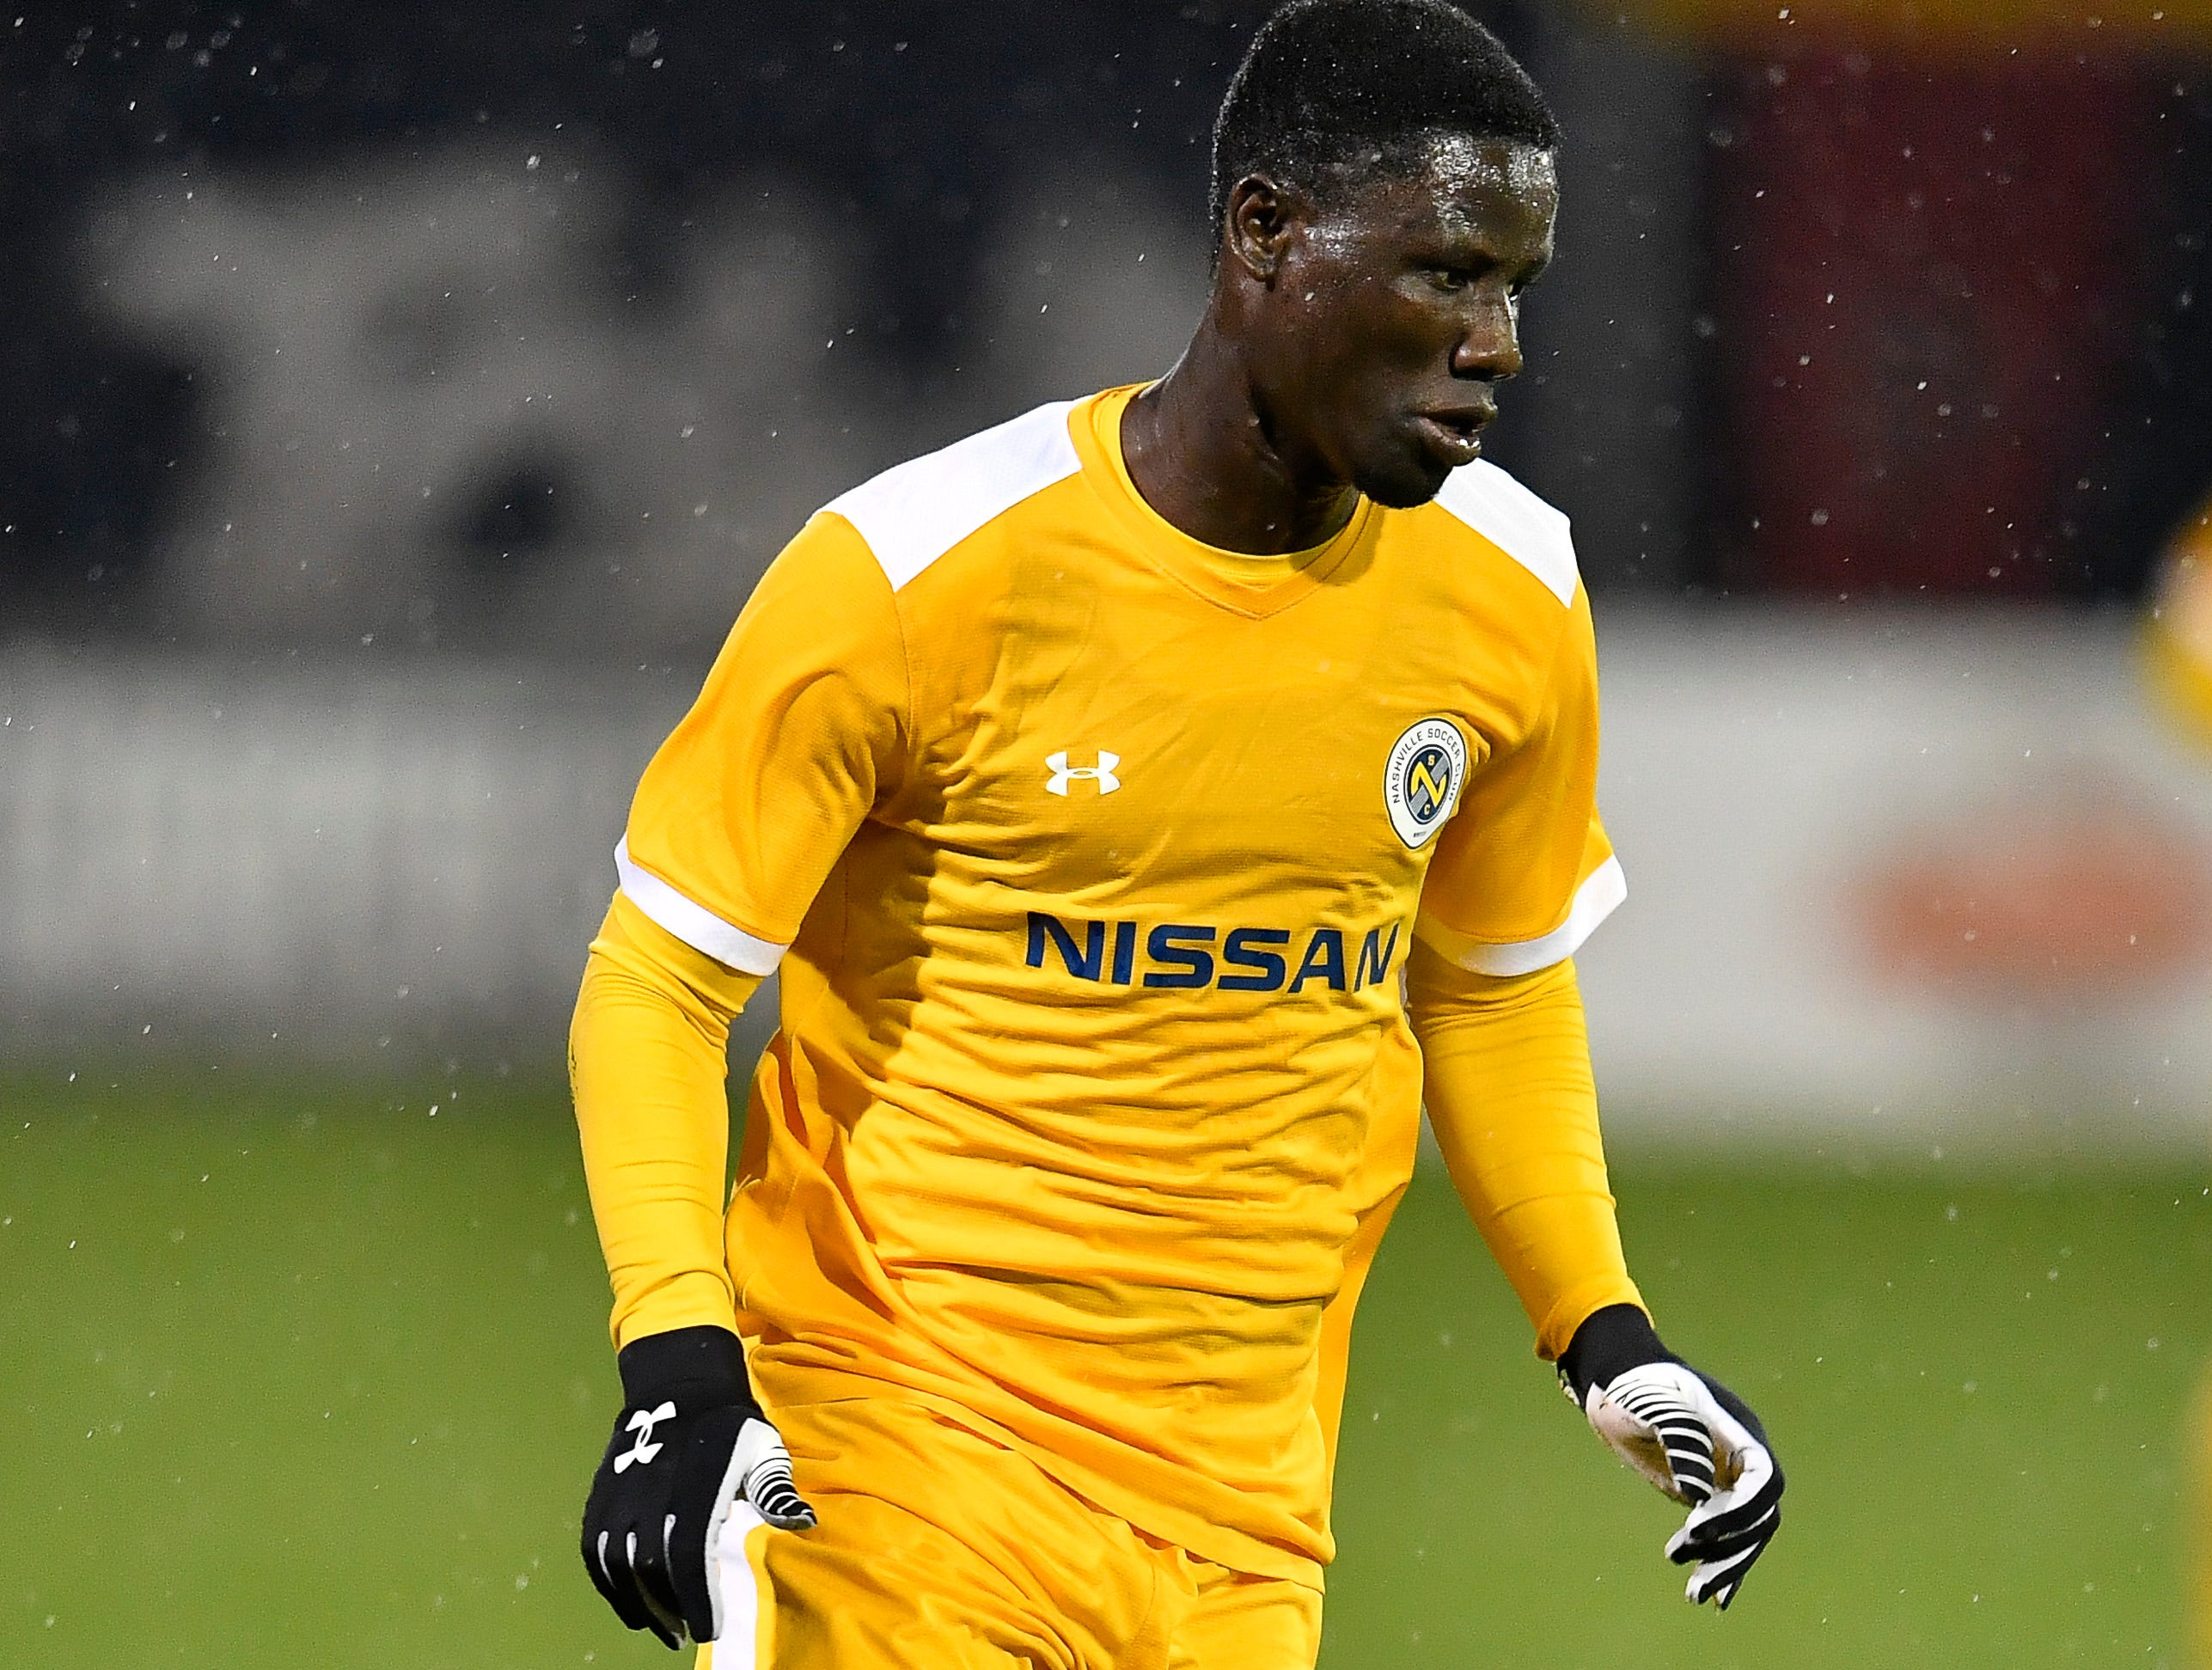 Nashville SC forward Ropapa Mensah (3) races up the field during the second half of their match against New York City FC at First Tennessee Park Friday, Feb. 22, 2019 in Nashville, Tenn.